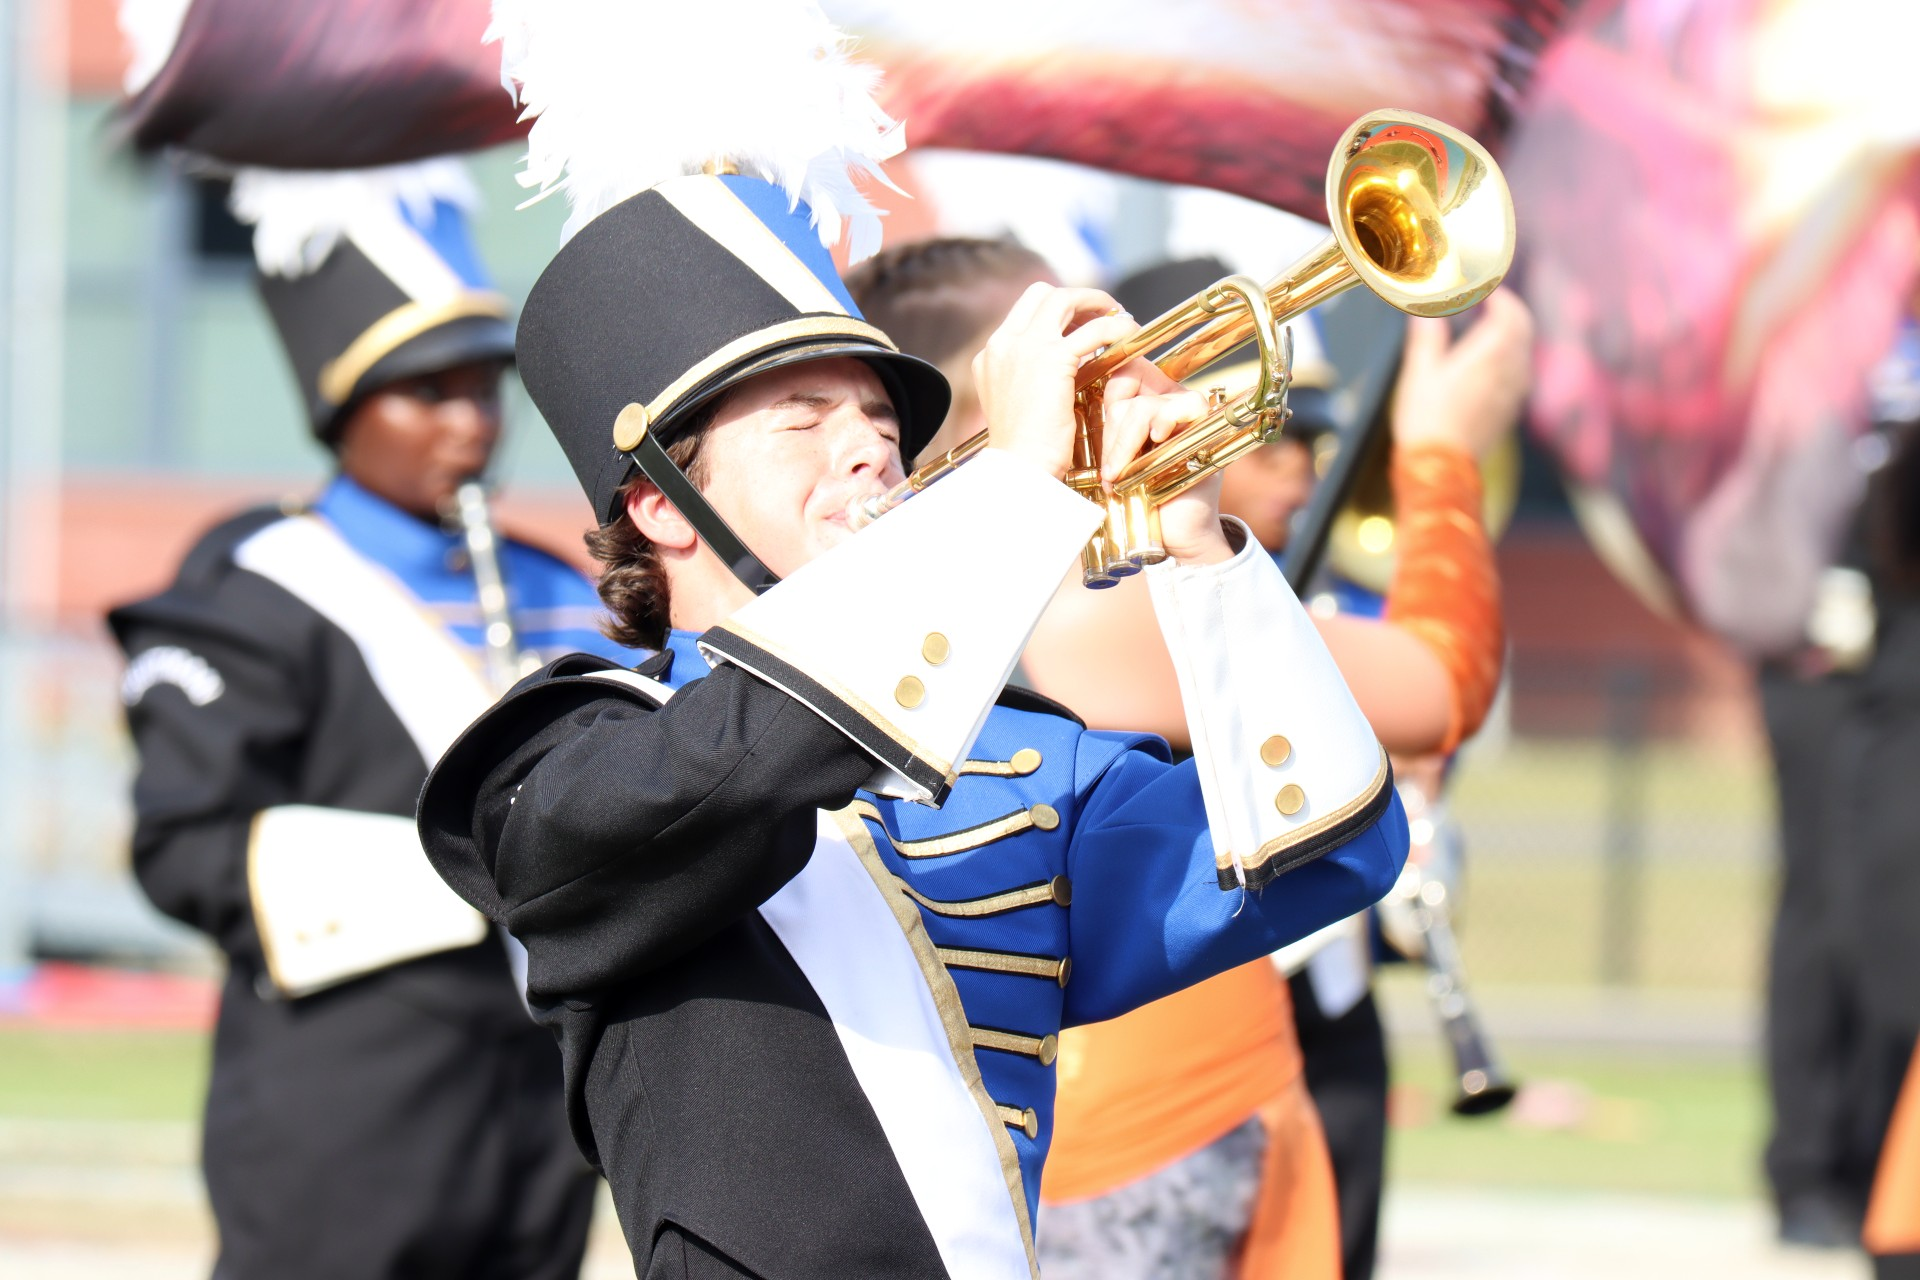 Band contest